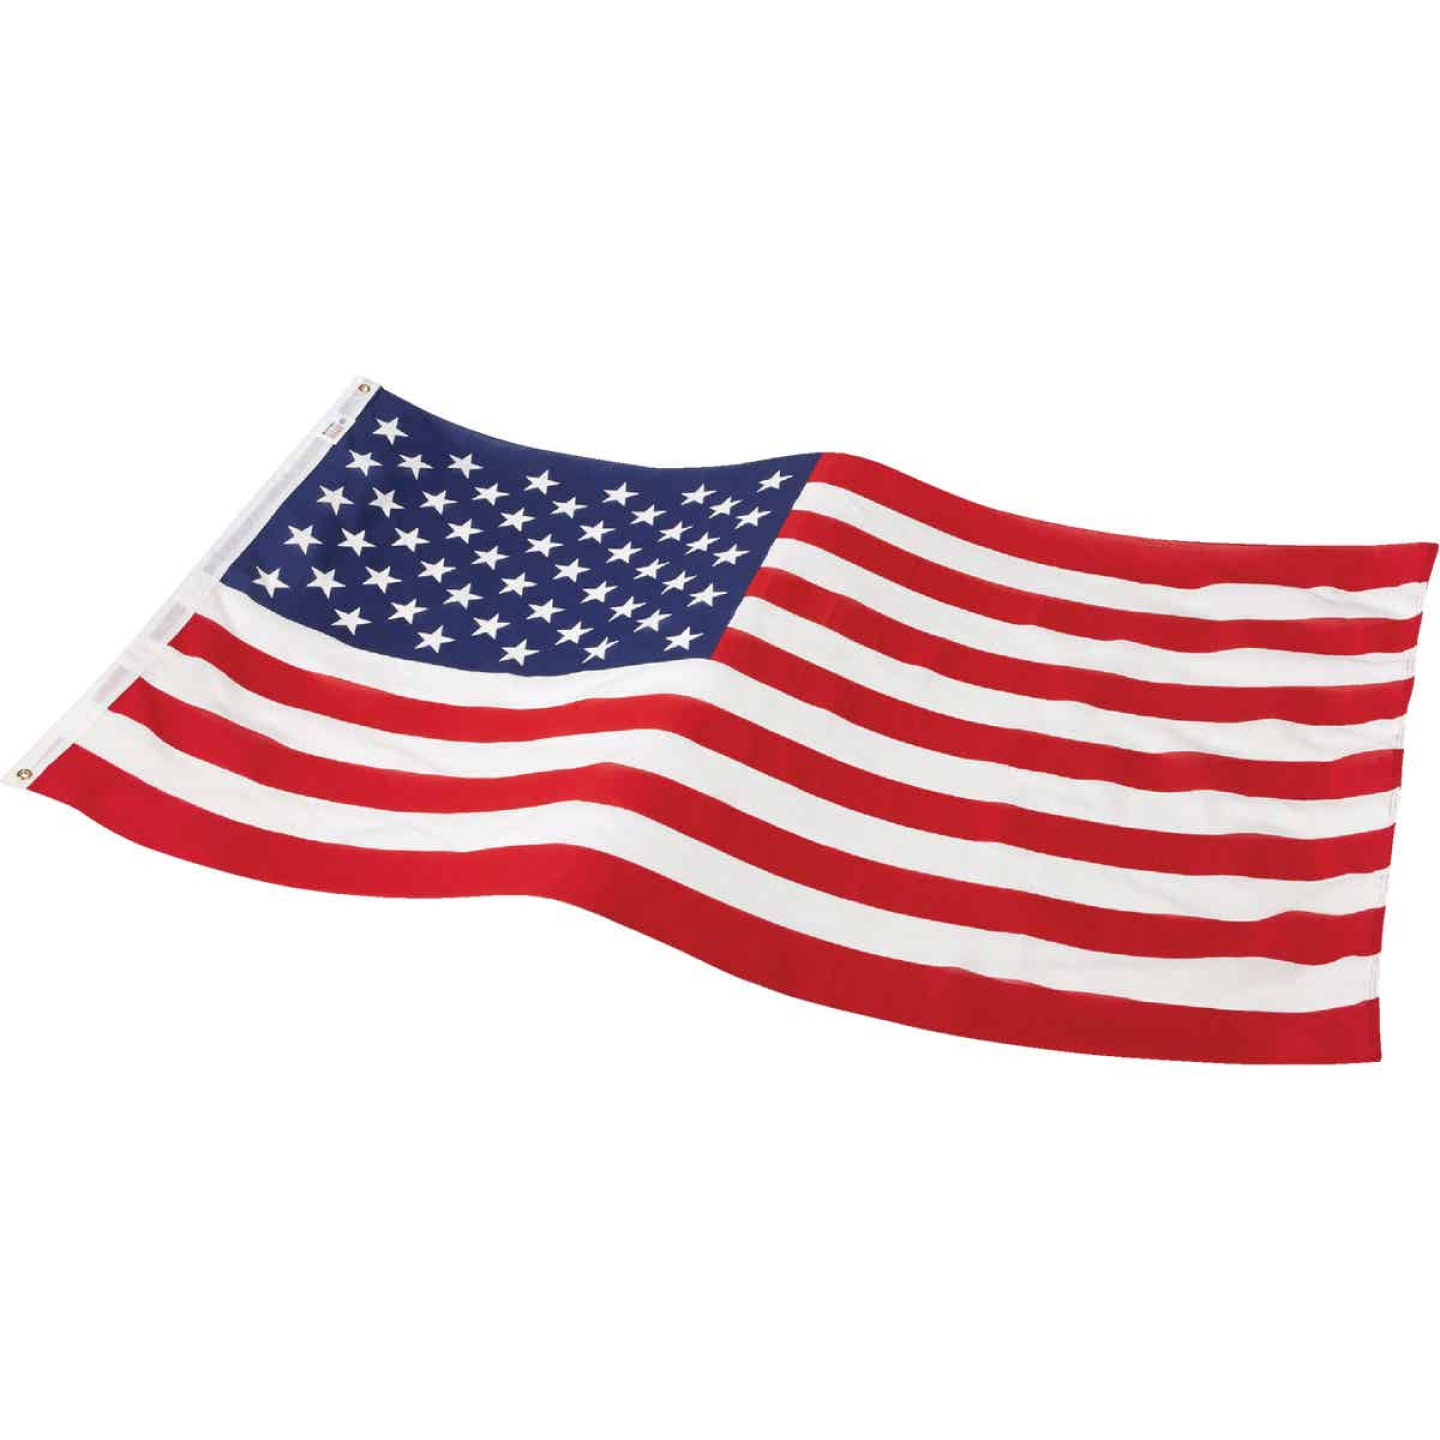 Valley Forge 3 Ft. x 5 Ft. Polycotton American Flag Image 3